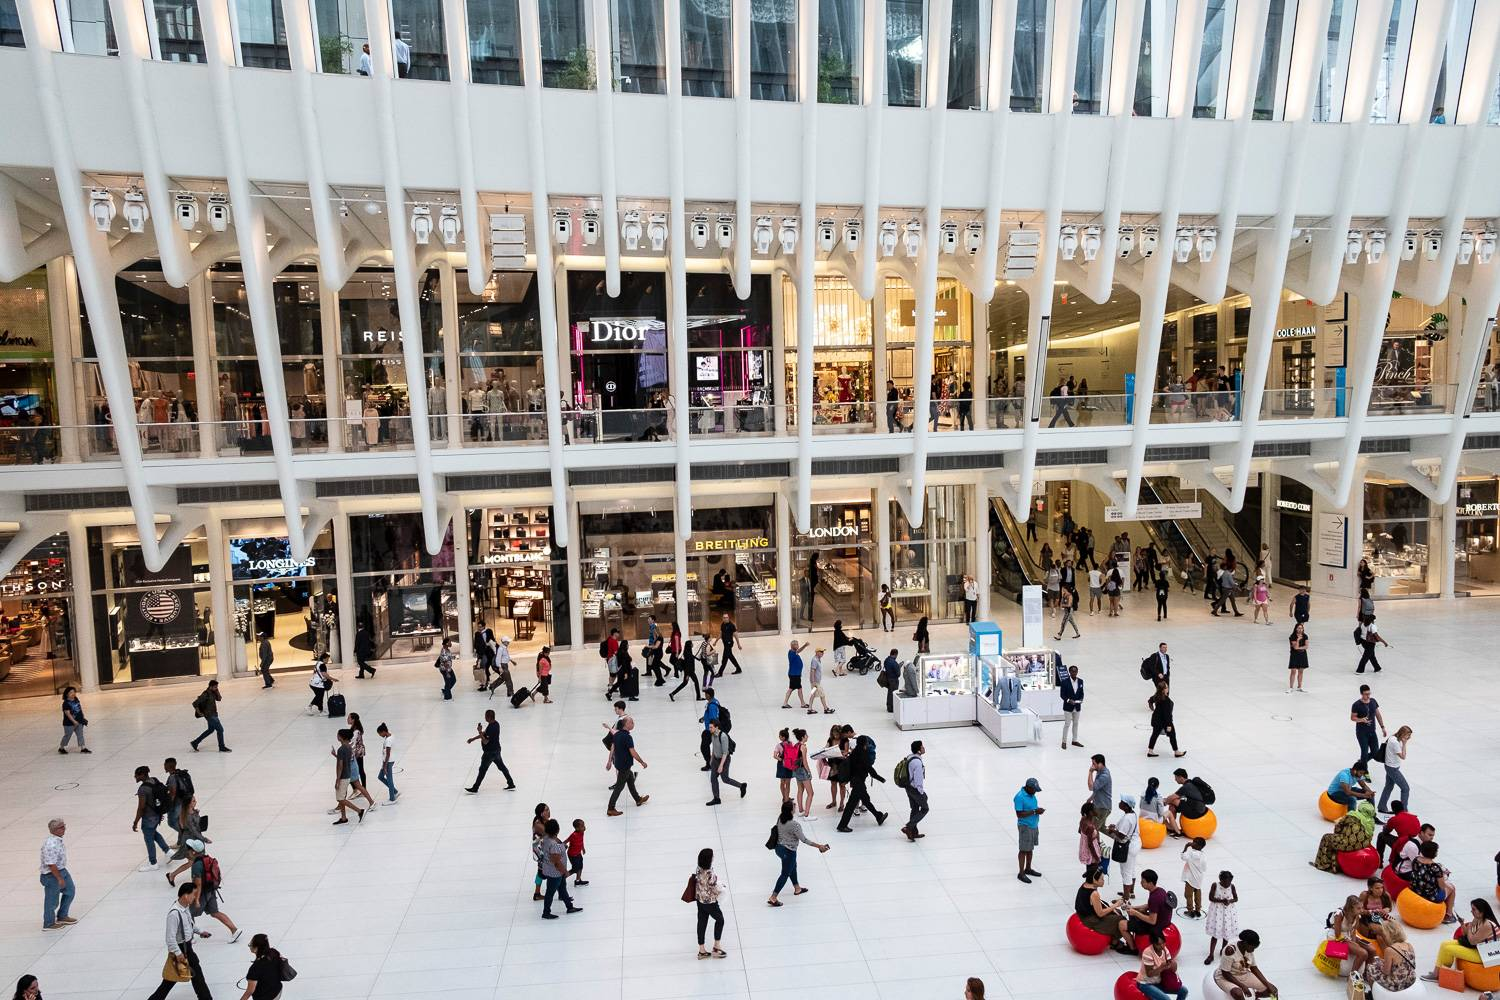 Image of the busy ground floor at Westfield World Trade Center filled with people walking.